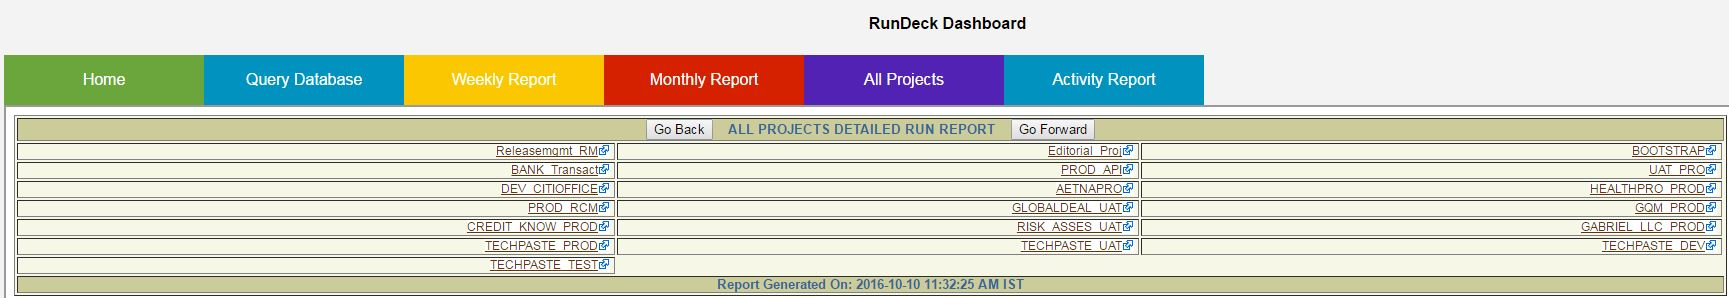 rundeck dashboard for reporting